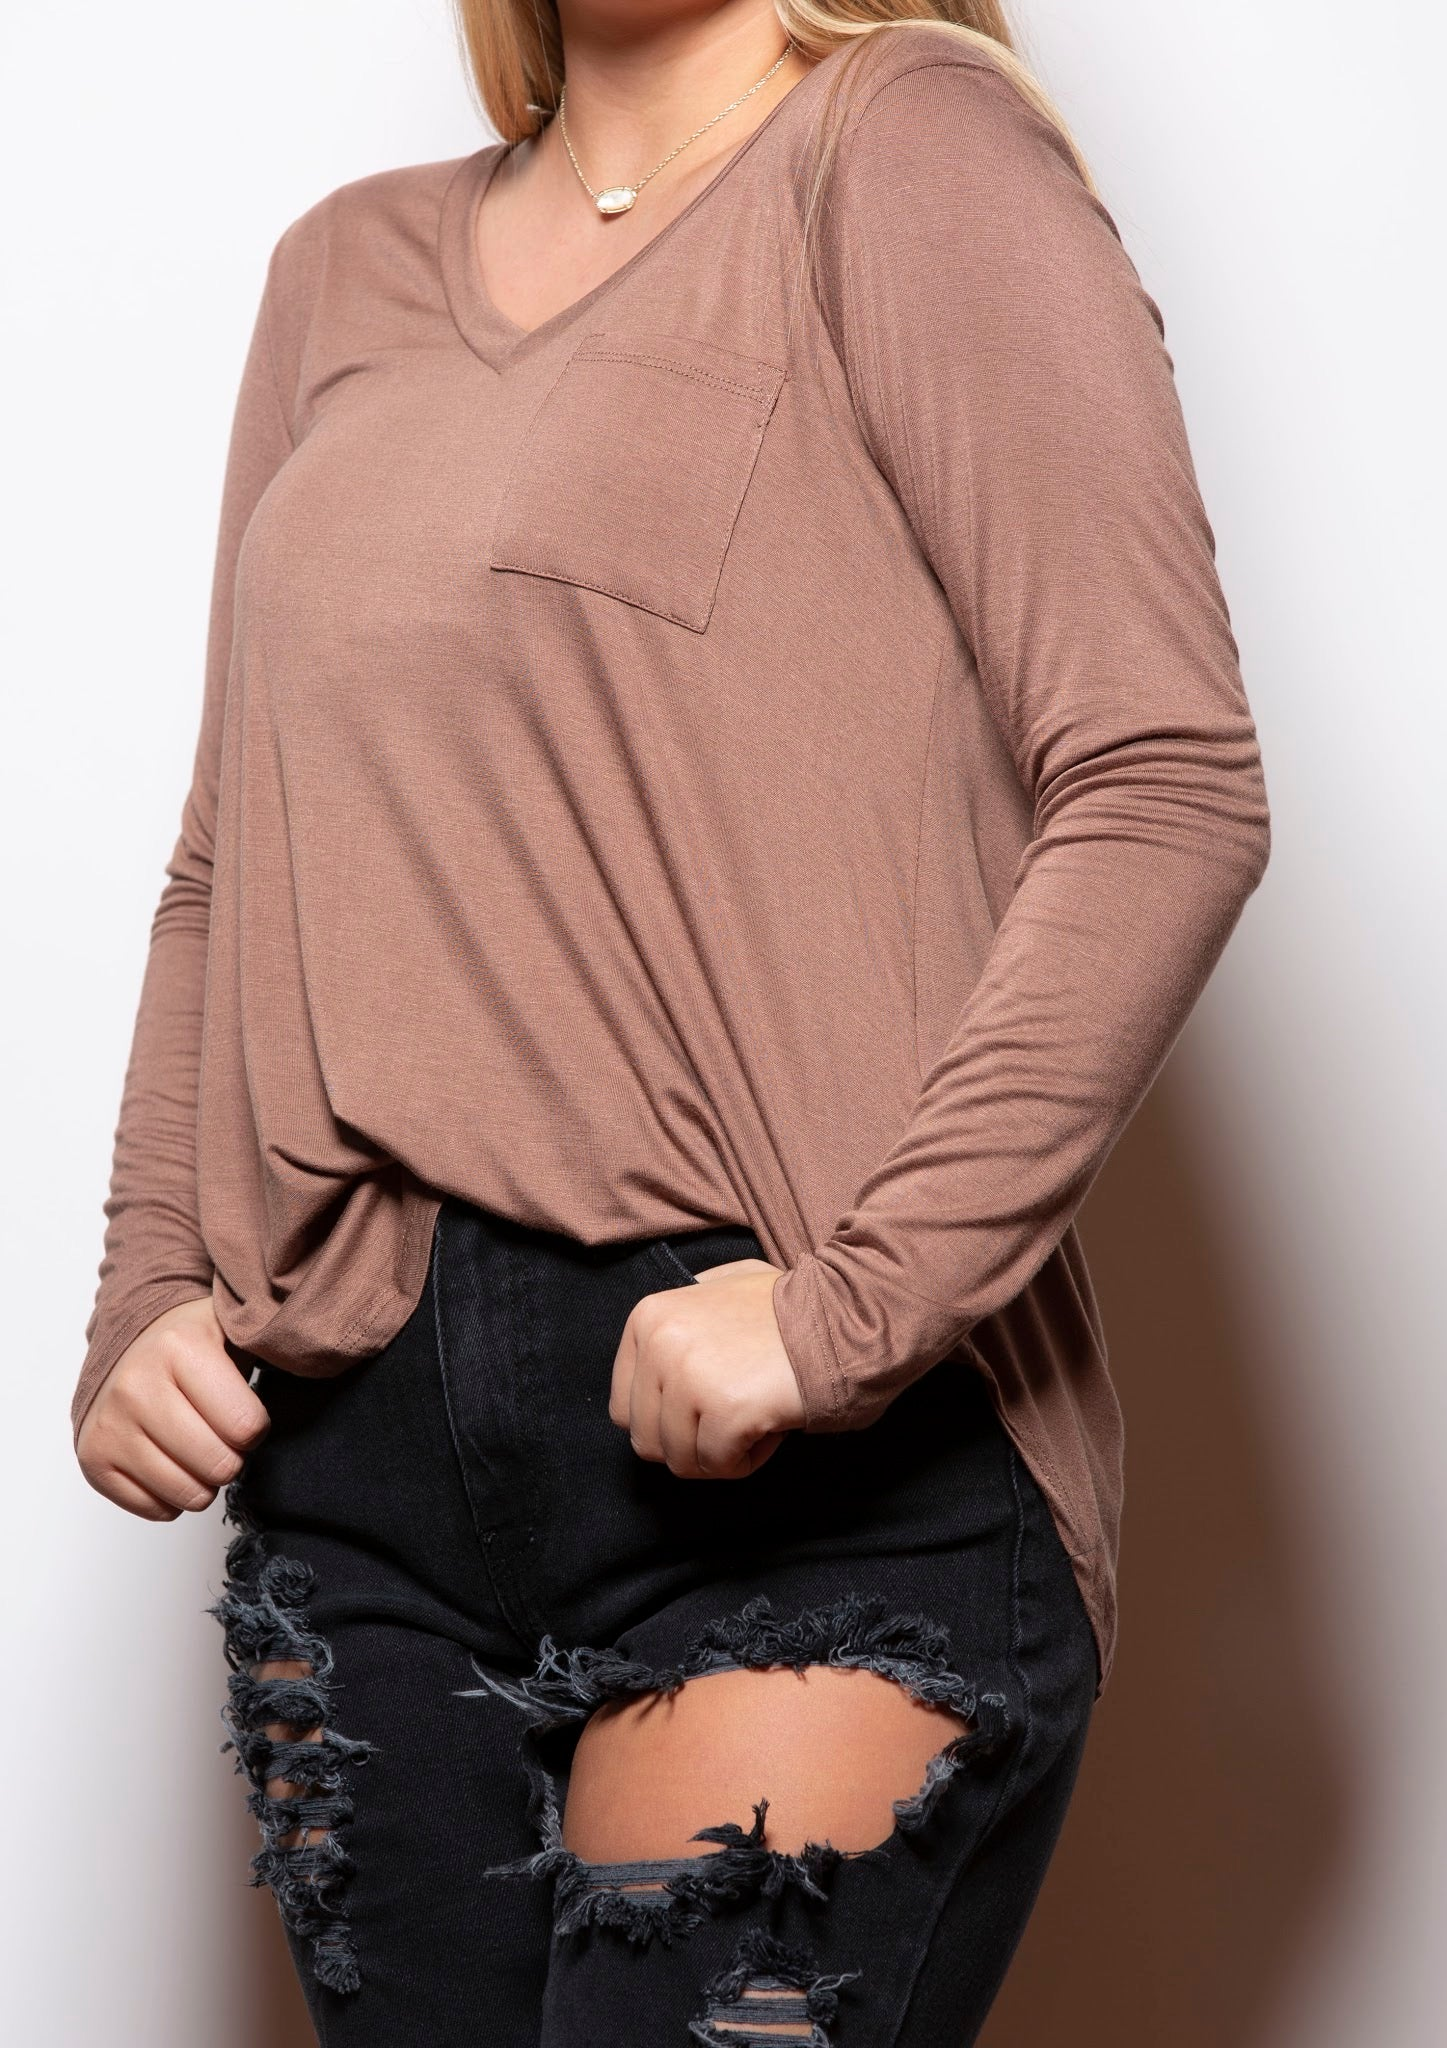 Back To Basics Long Sleeve Tee - impromptu boutique